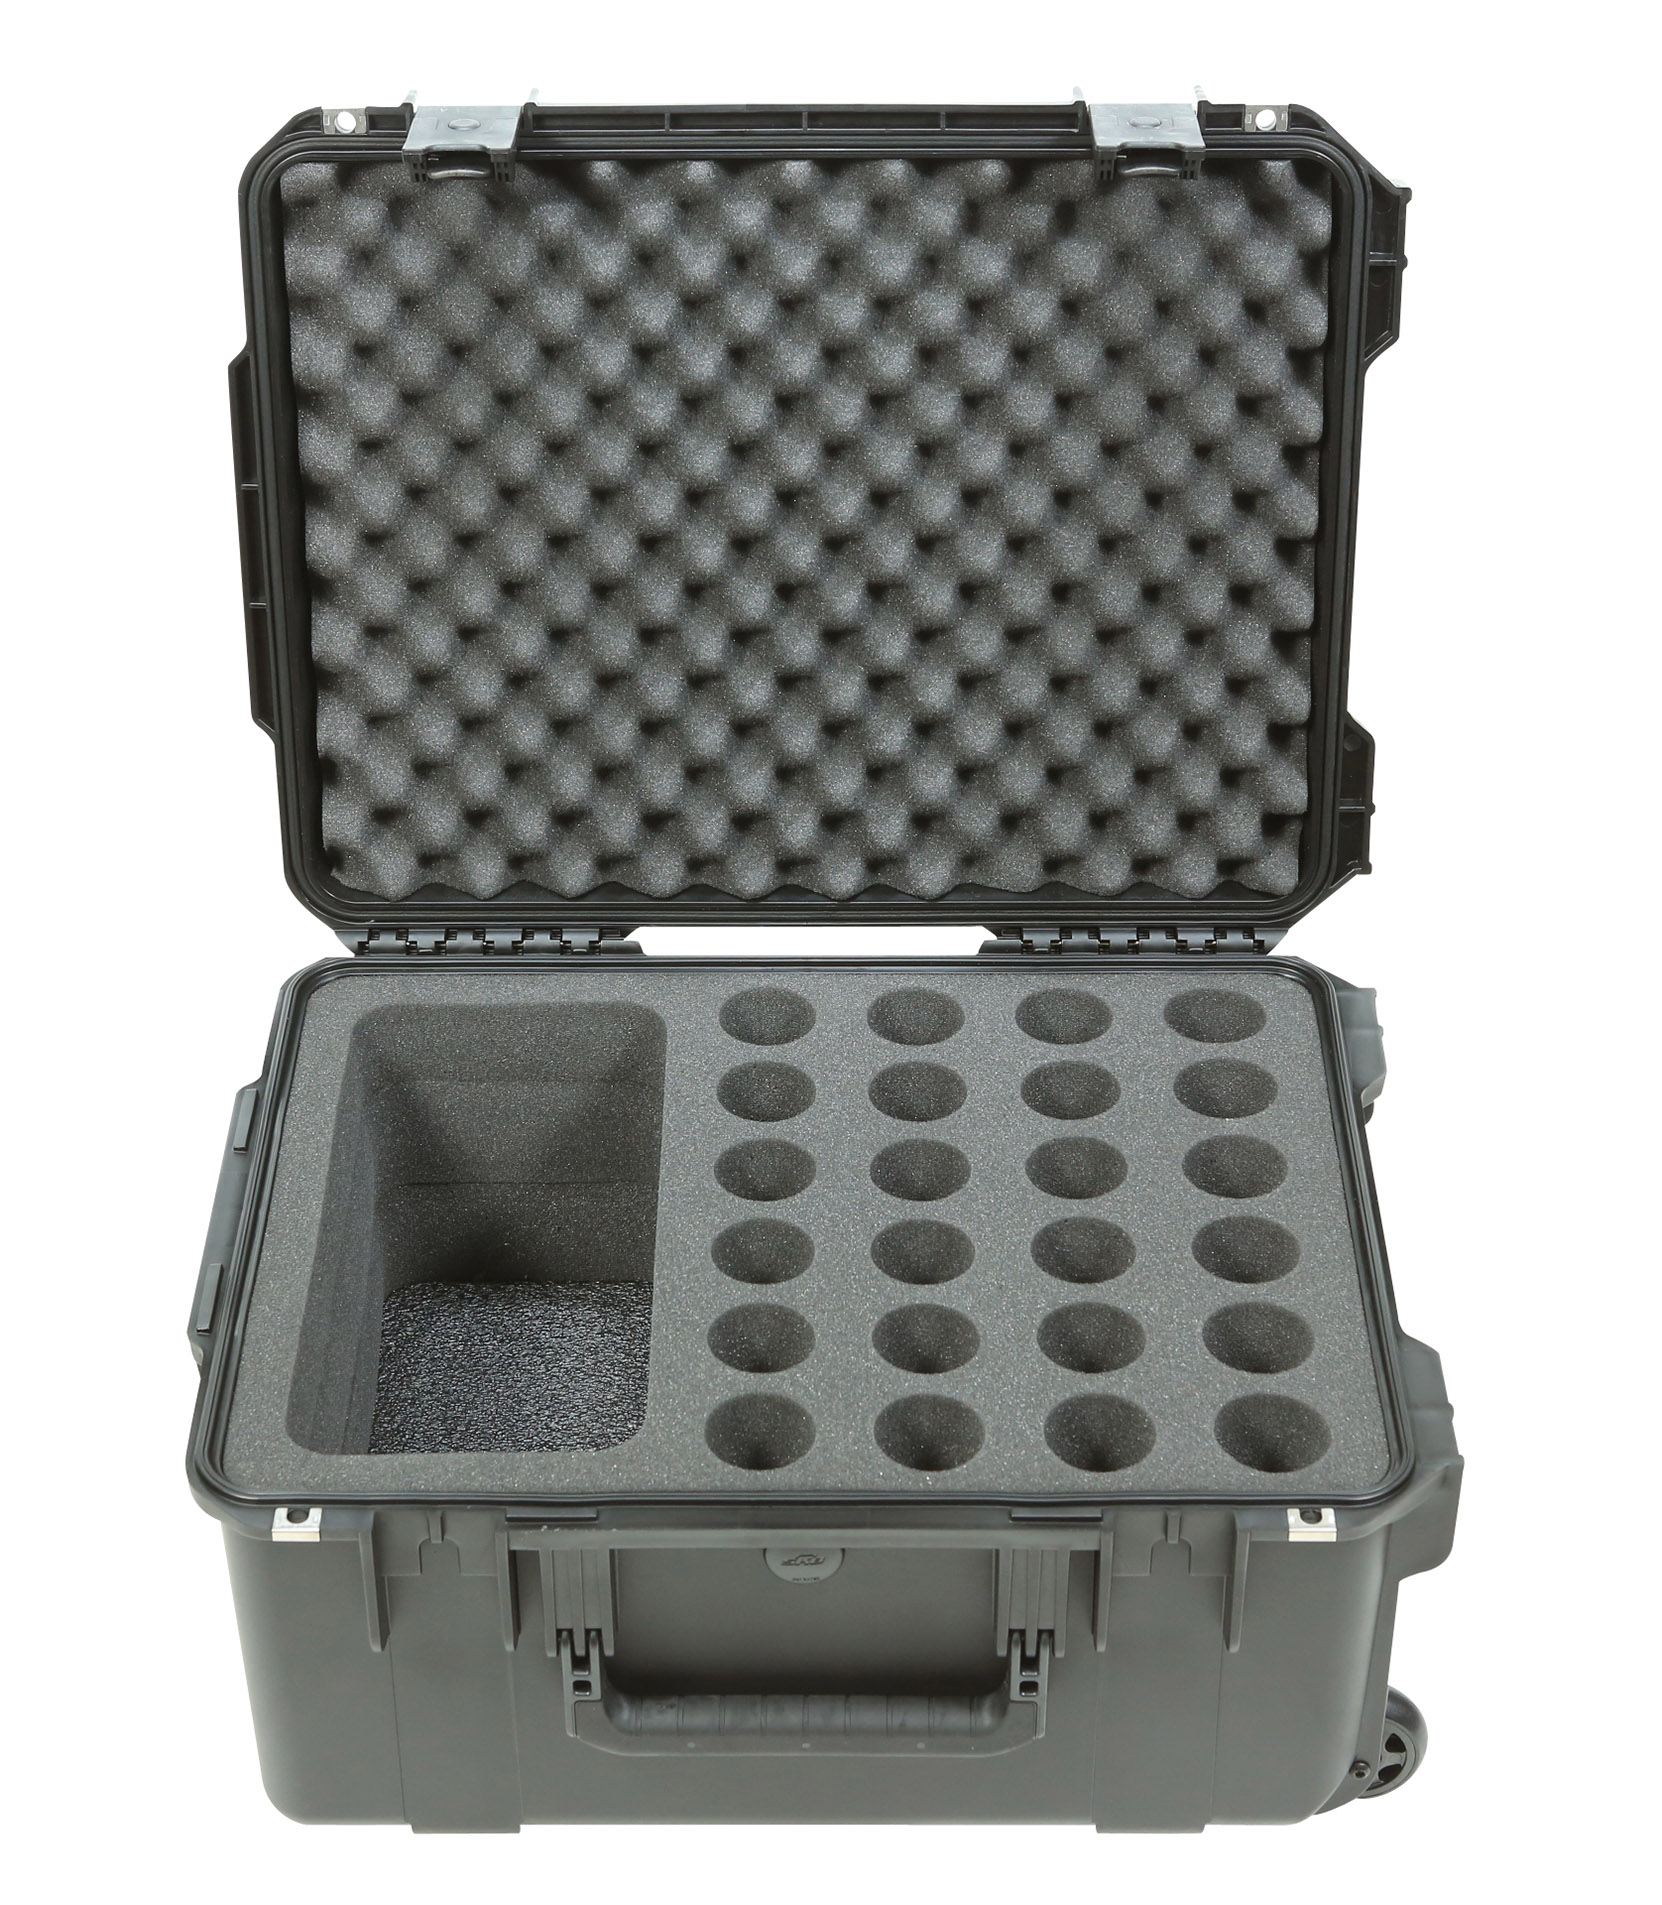 buy skb 3i 2015 mc24 injection molded case w foam for 24